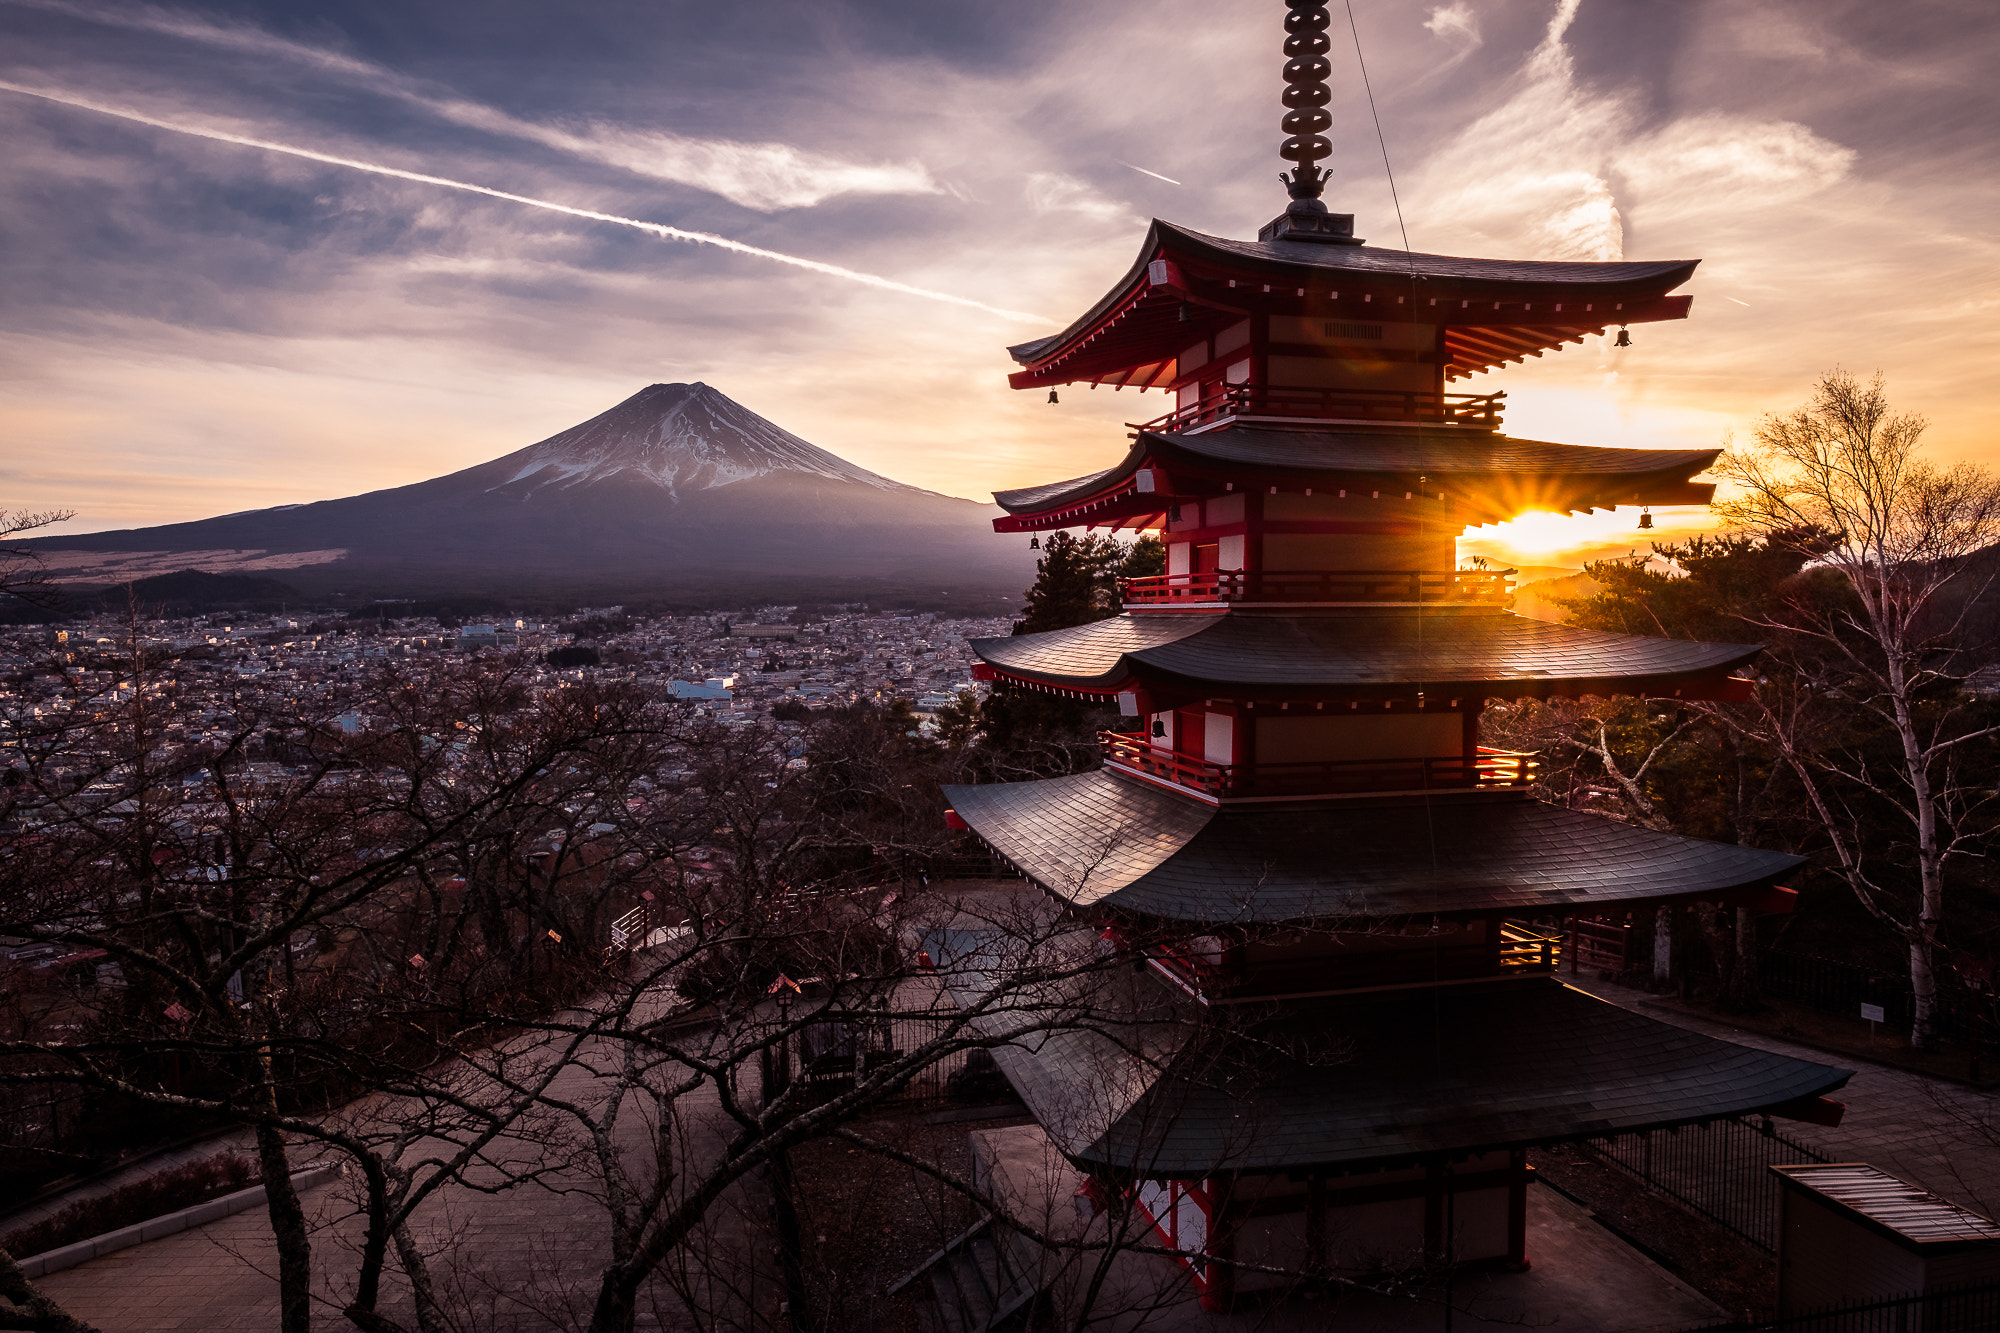 Japan to Ease Travel Restrictions: What We Need to Know